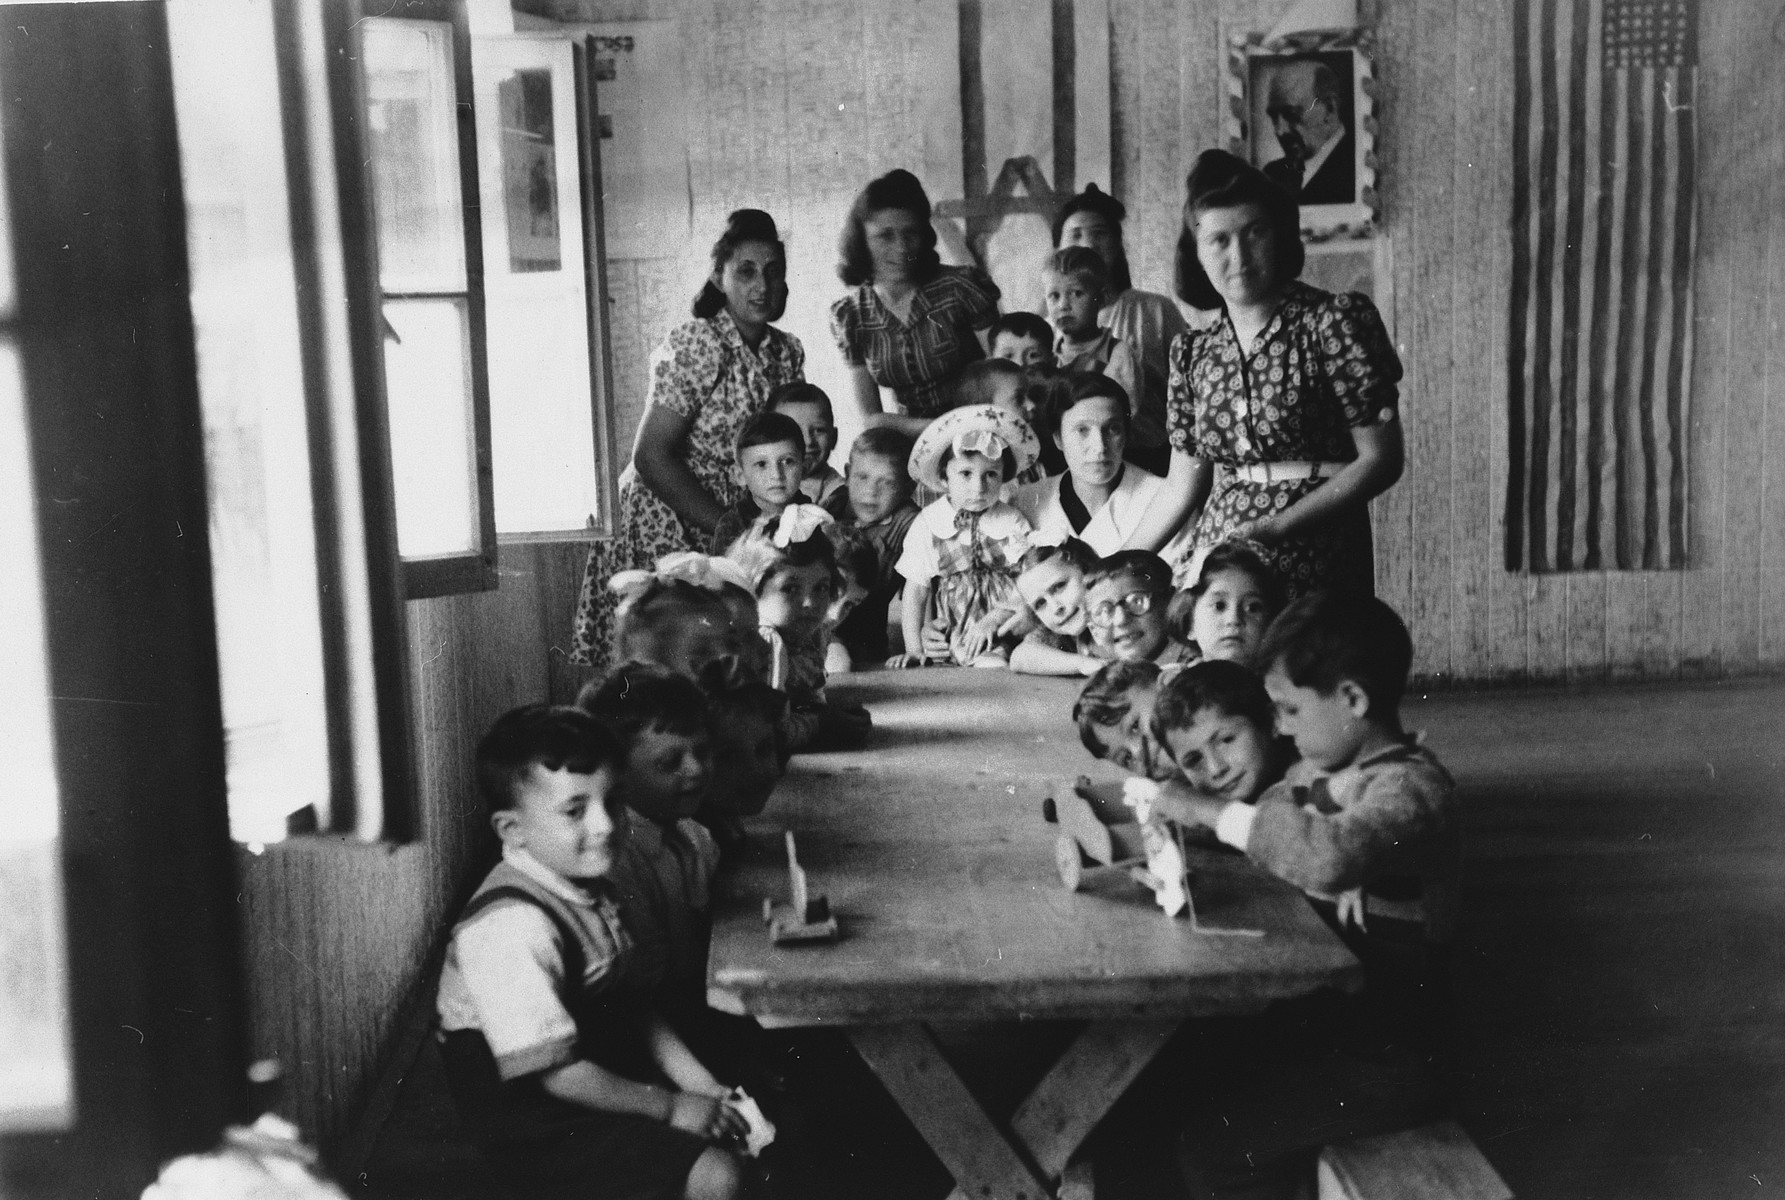 Preschool children and their teachers pose around a long table in the Wels DP camp.